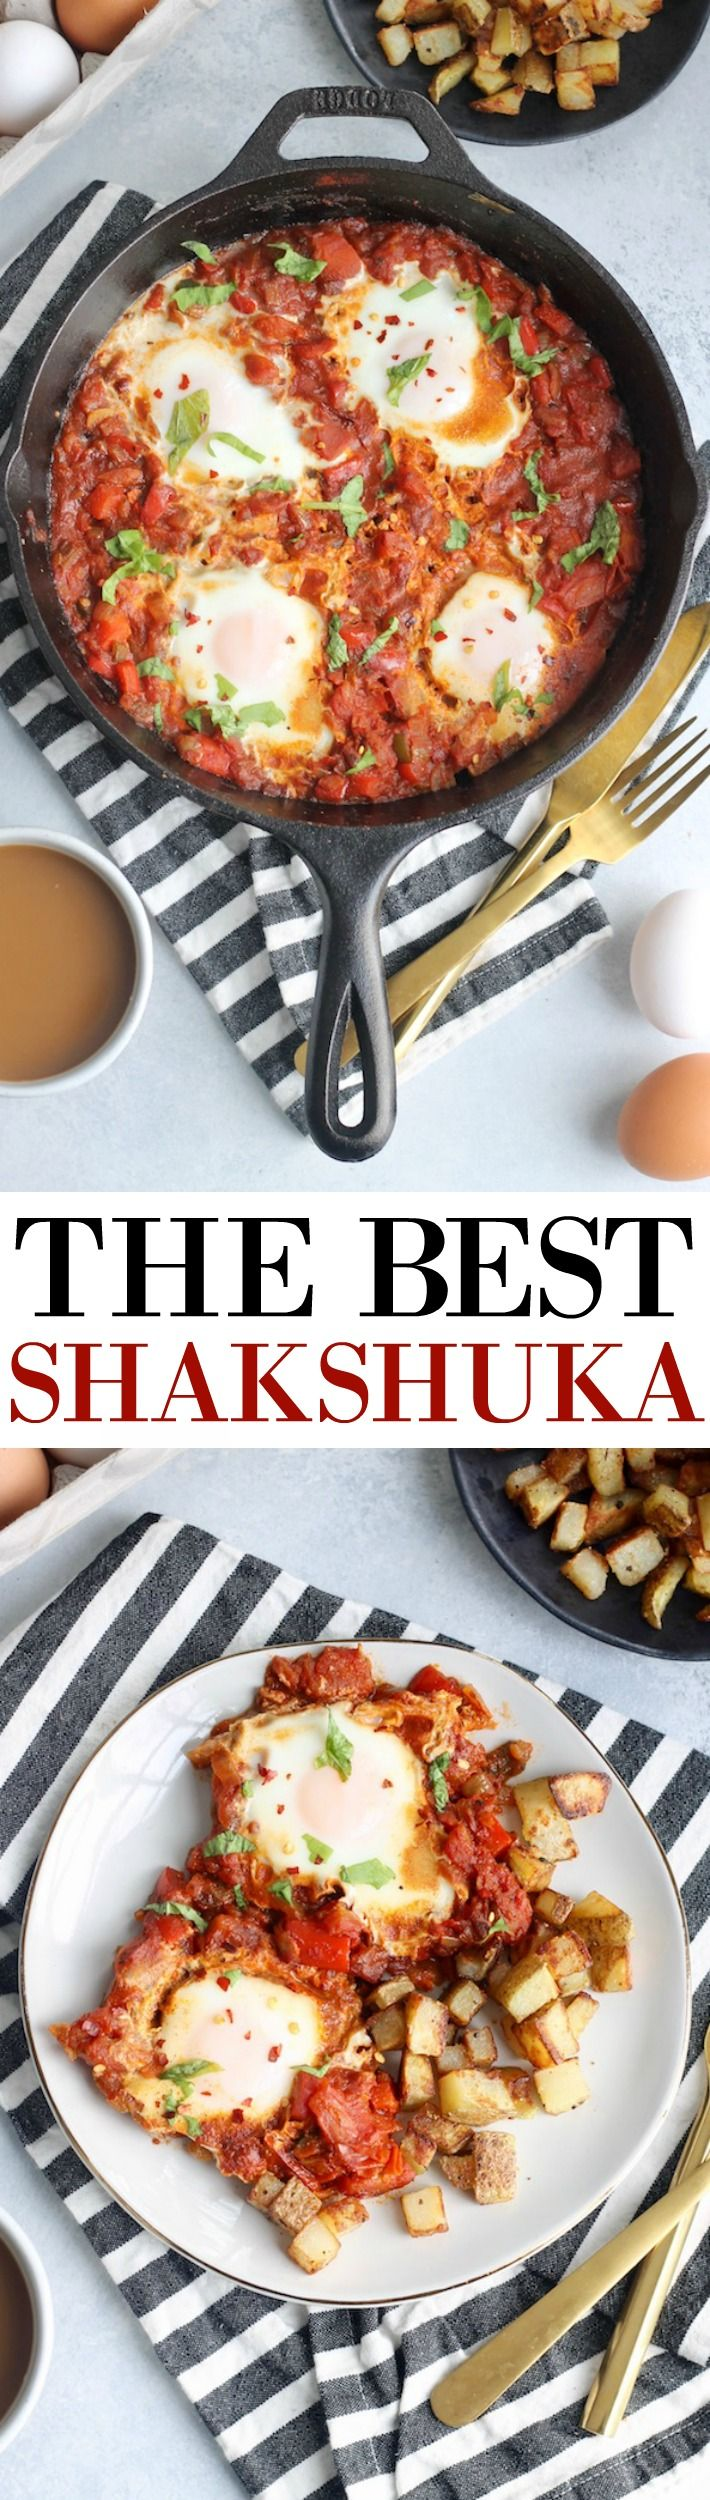 The best shakshuka recipe with perfectly spiced tomato sauce, peppers, onions, and eggs. The most epic brunch served with pan-fried potatoes or crusty bread! This is a sponsored conversation written by me on behalf of American Egg Board. The opinions and text are all mine. Let me begin by saying I owned a cast iron skillet for a solid year before I used it. A YEAR. It intimidated the heck out of me. How do I... Read More »